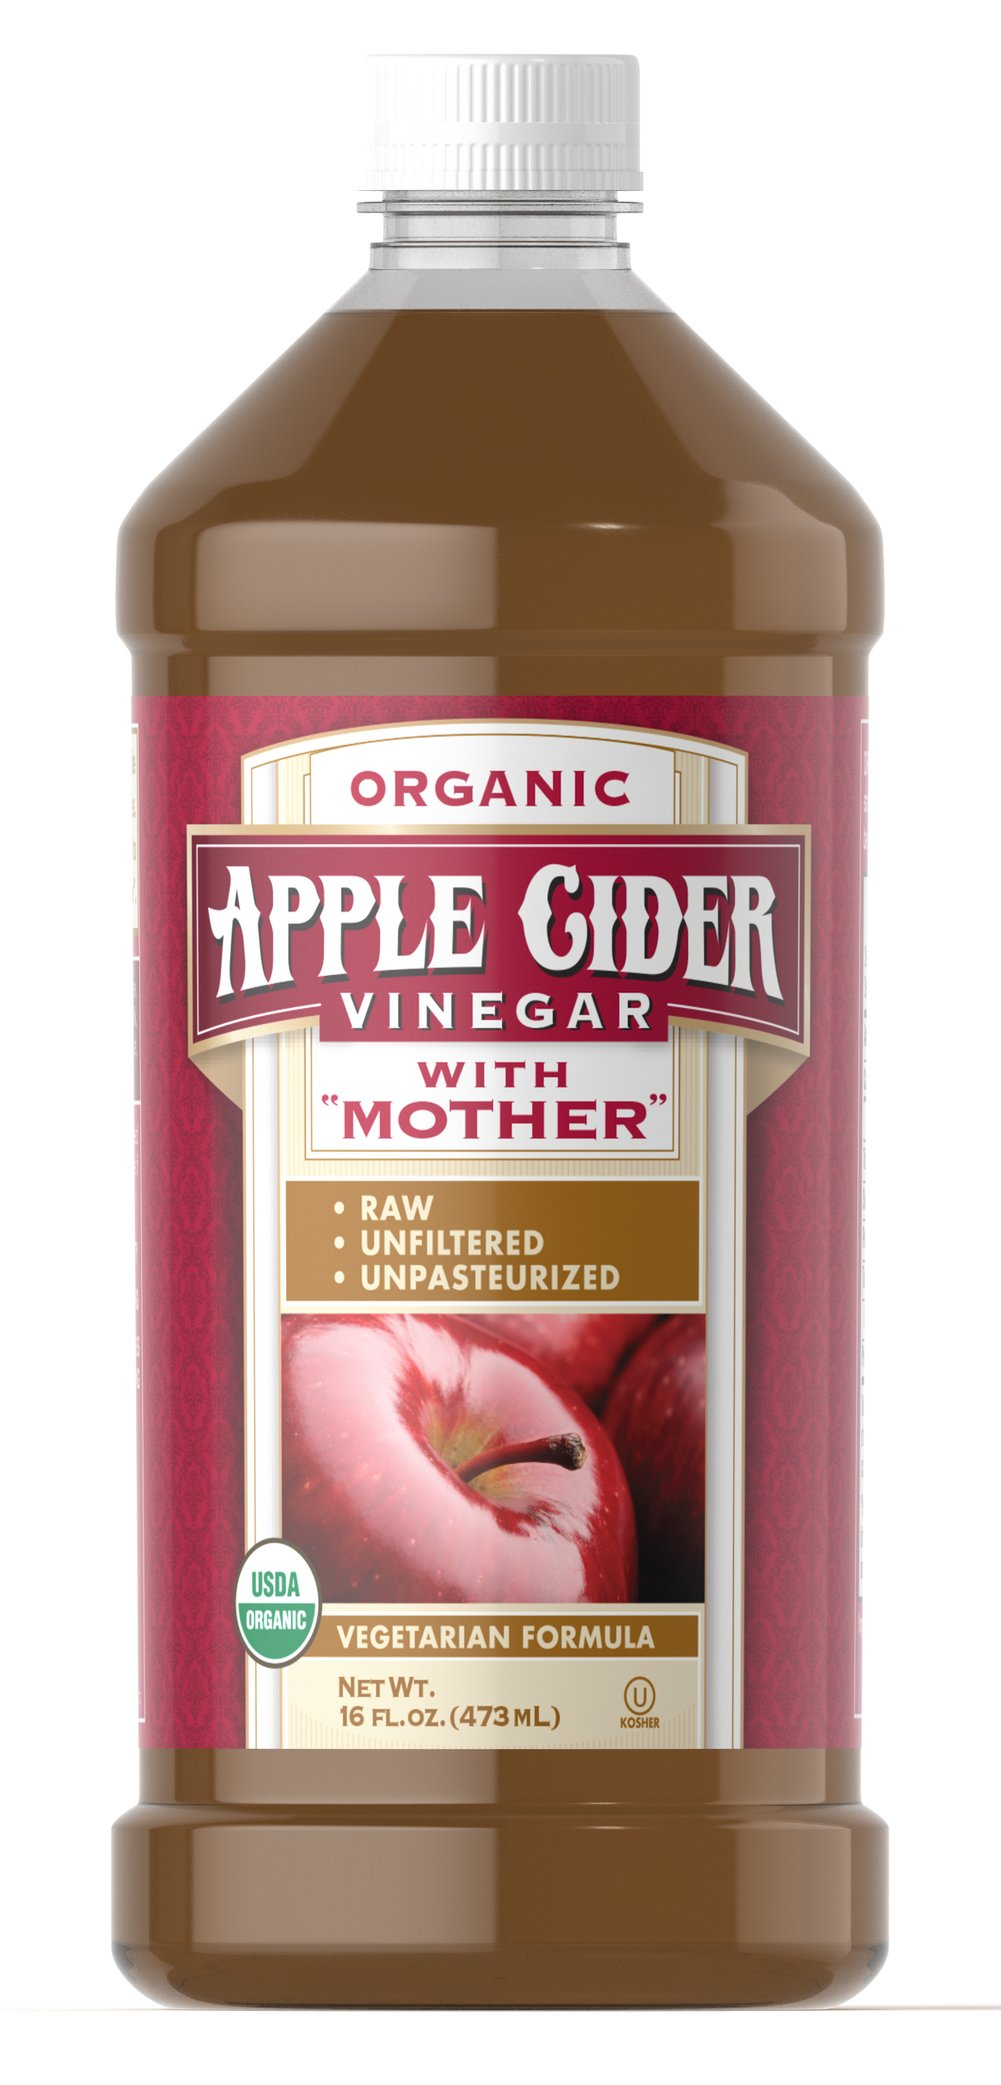 "Organic Apple Cider Vinegar with ""Mother"" <ul><li>Raw</li><li>Unfiltered</li><li>Unpasteurized</li></ul><p>Organic Apple Cider Vinegar is made from certified Organic grown apples.  It is unpasteurized and unfiltered to retain the naturally formed ""Mother"".</p> 16 oz Liquid  $7.99"